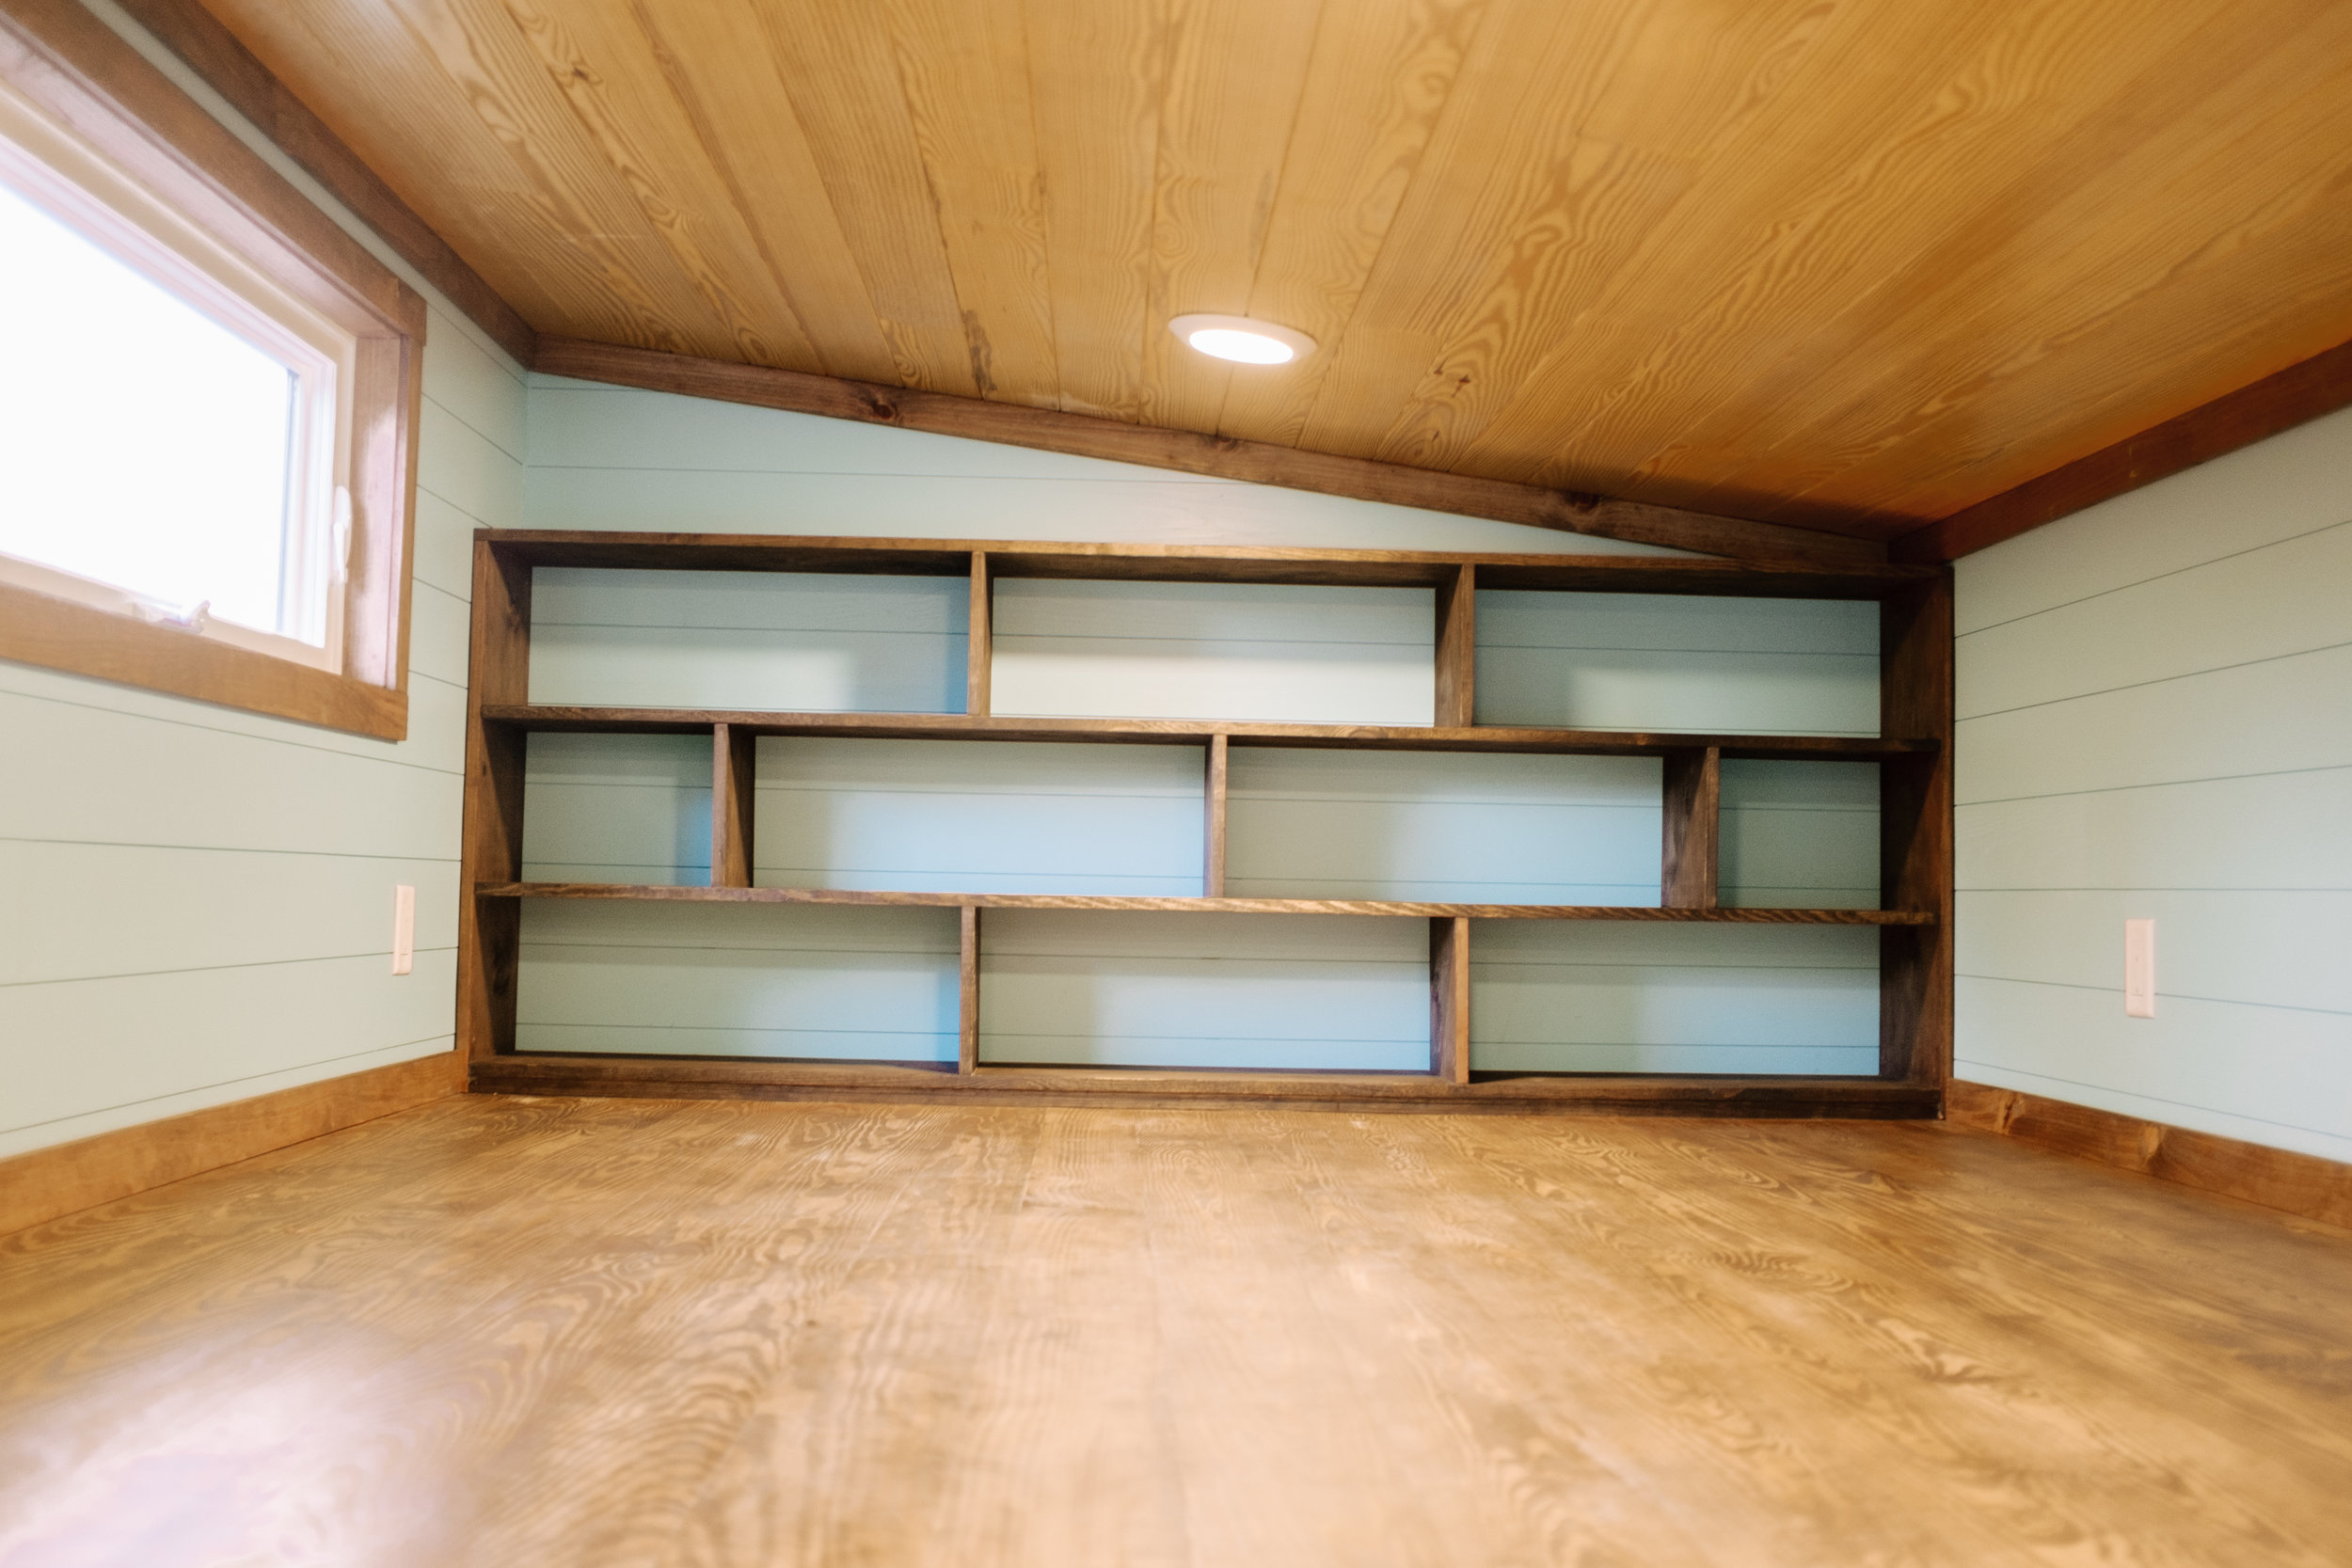 The Big Whimsy by Wind River Tiny Homes - 10' primary loft, open cubby shelving, natural yellow pine ceiling, LED flush lights